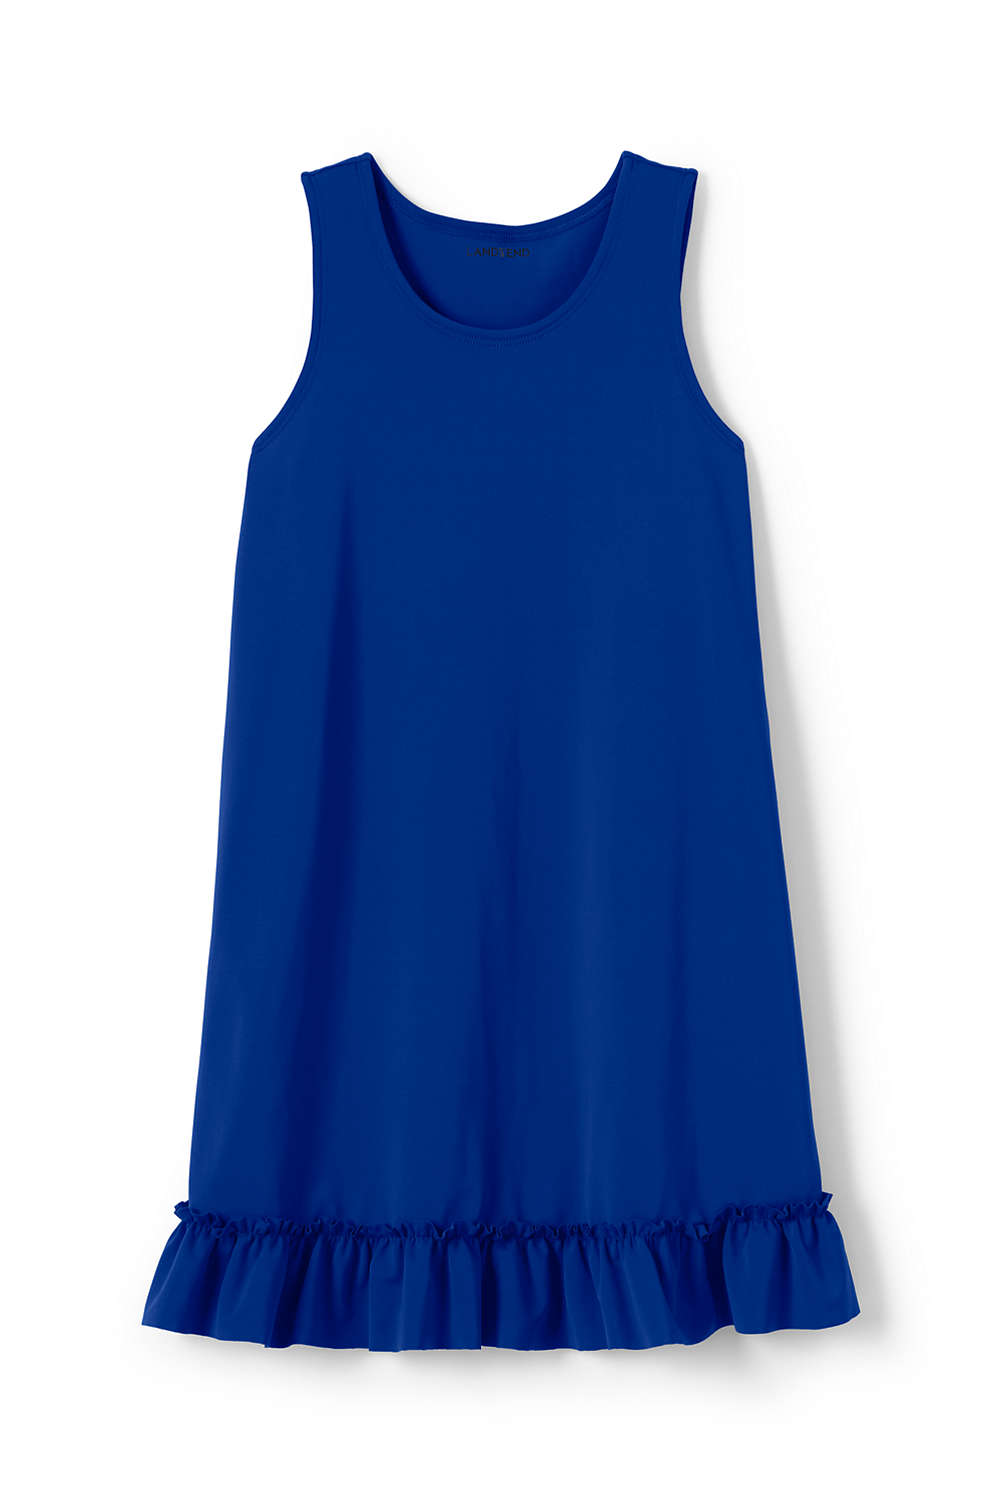 770e3f8f926e5 Little Girls Swim Dress Cover-up from Lands' End